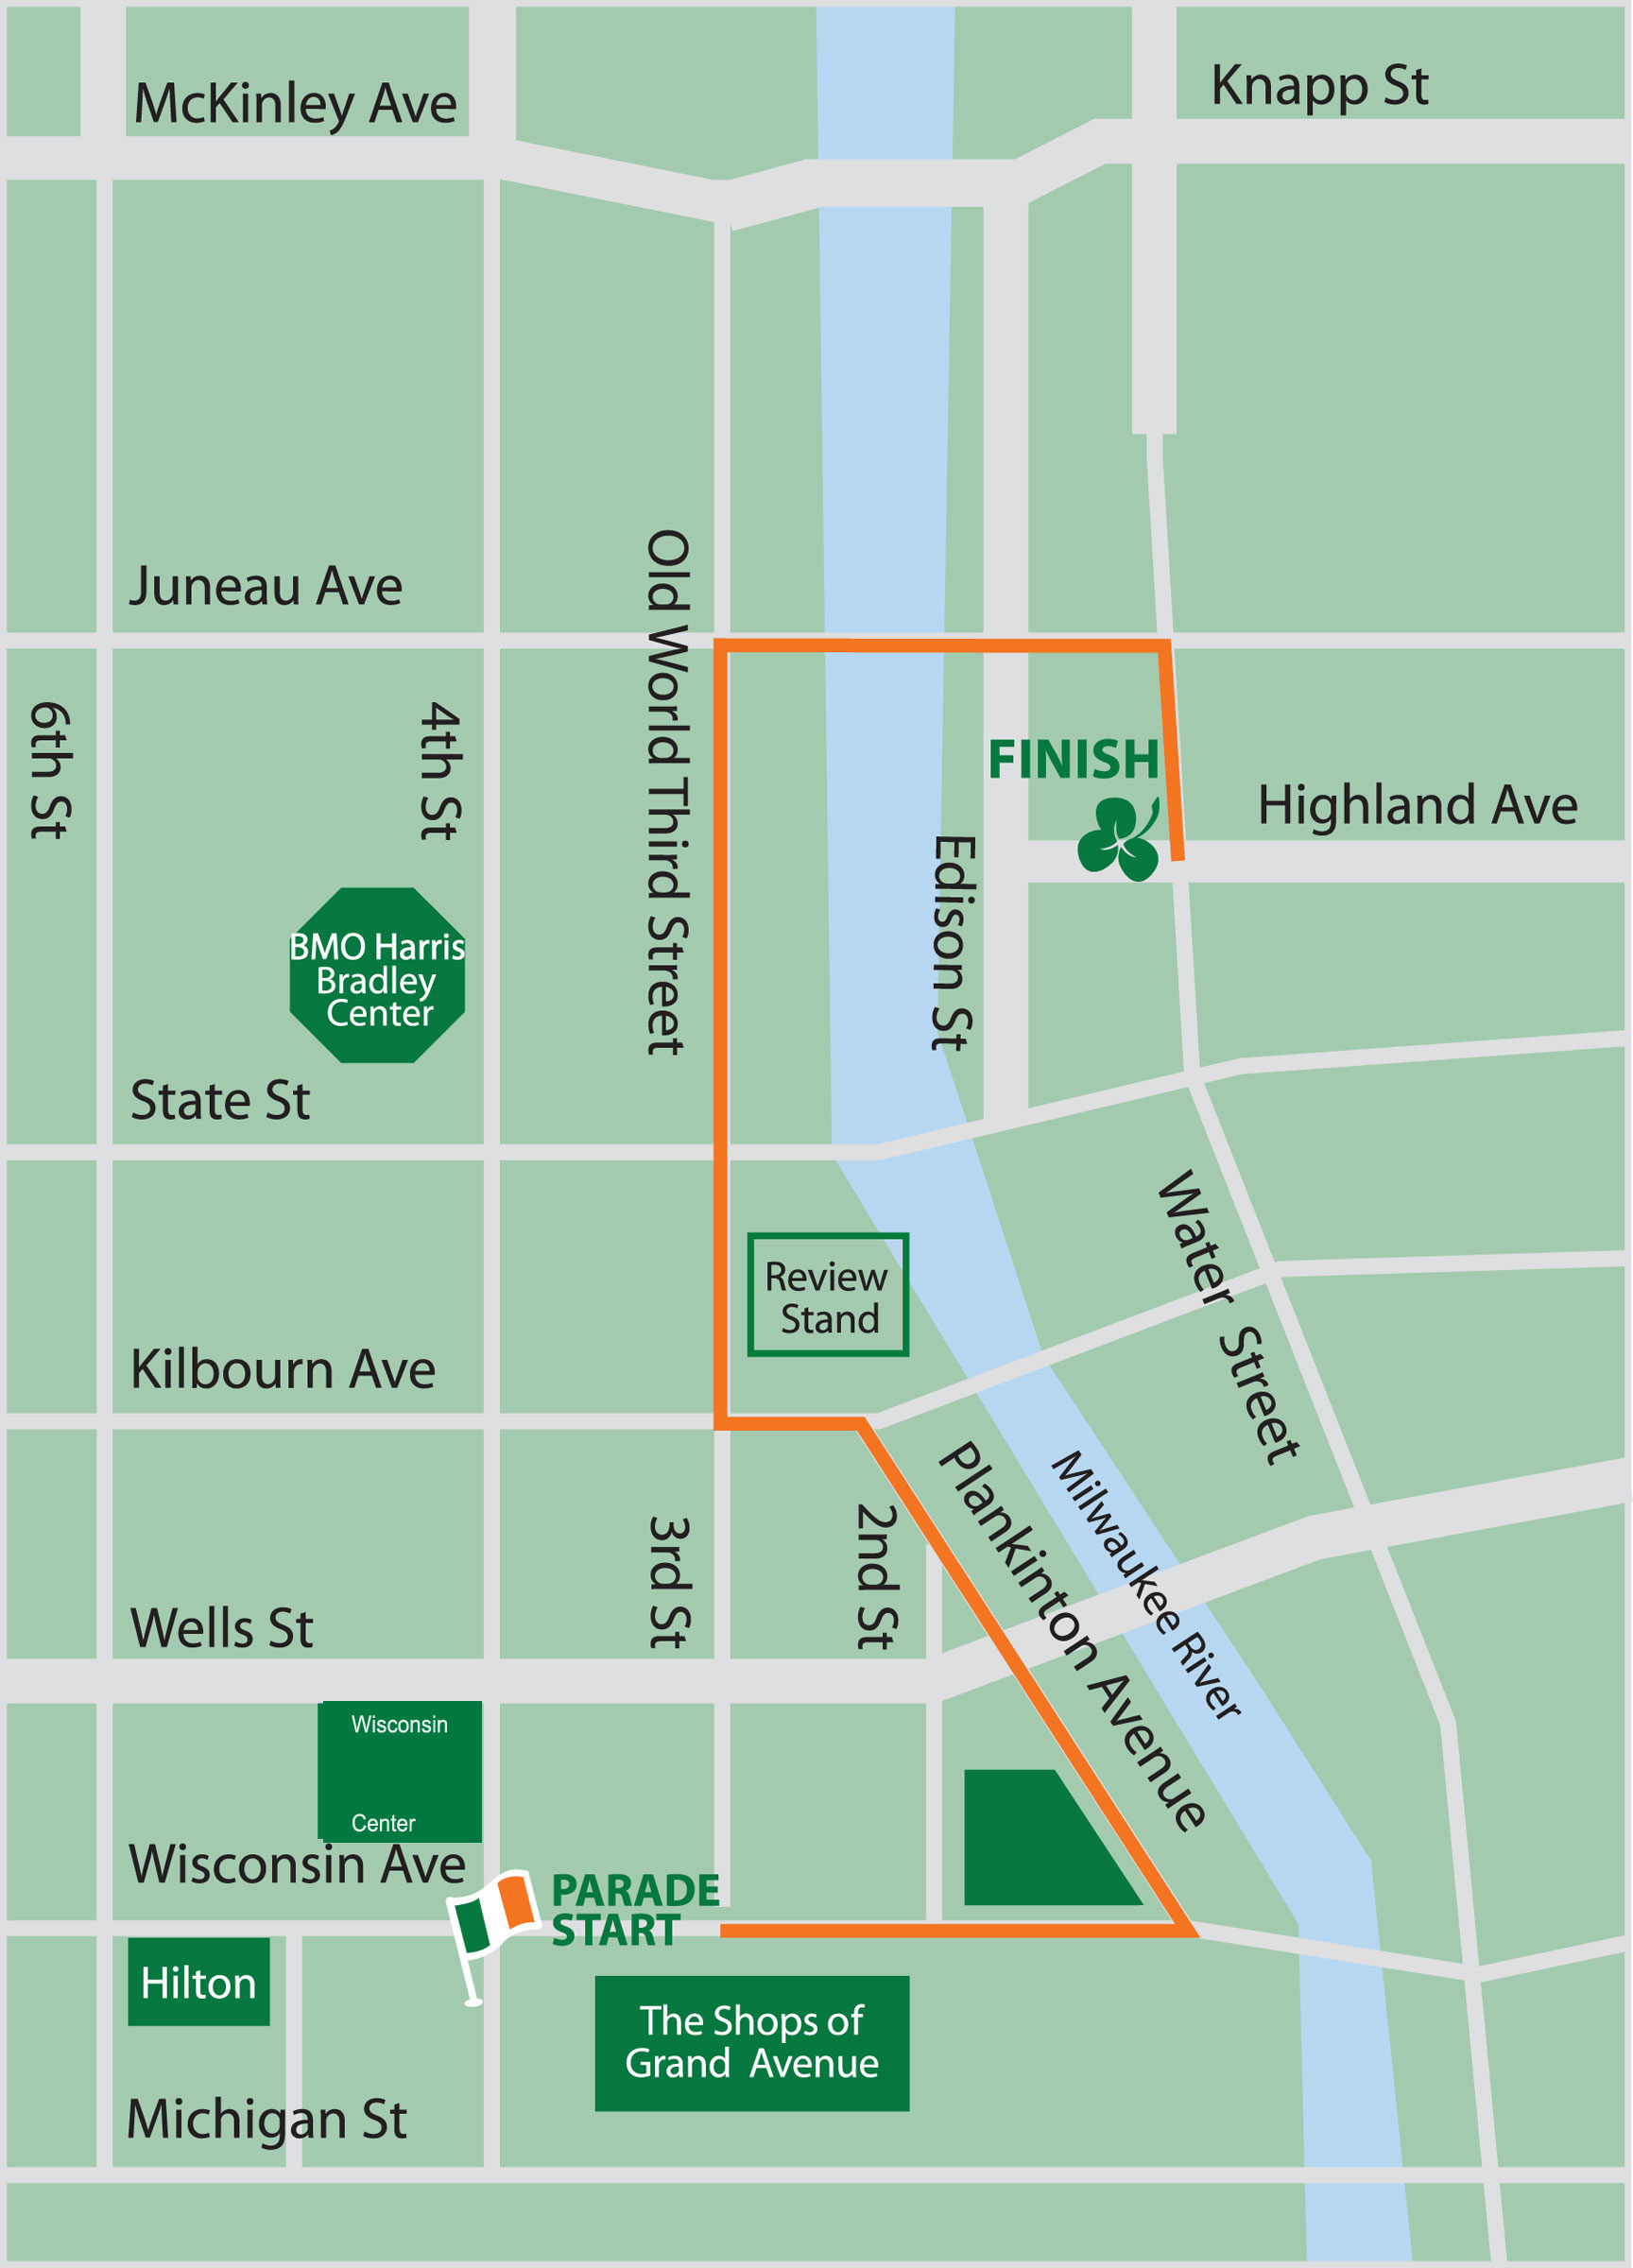 2015 St. Patrick's Day Parade Route